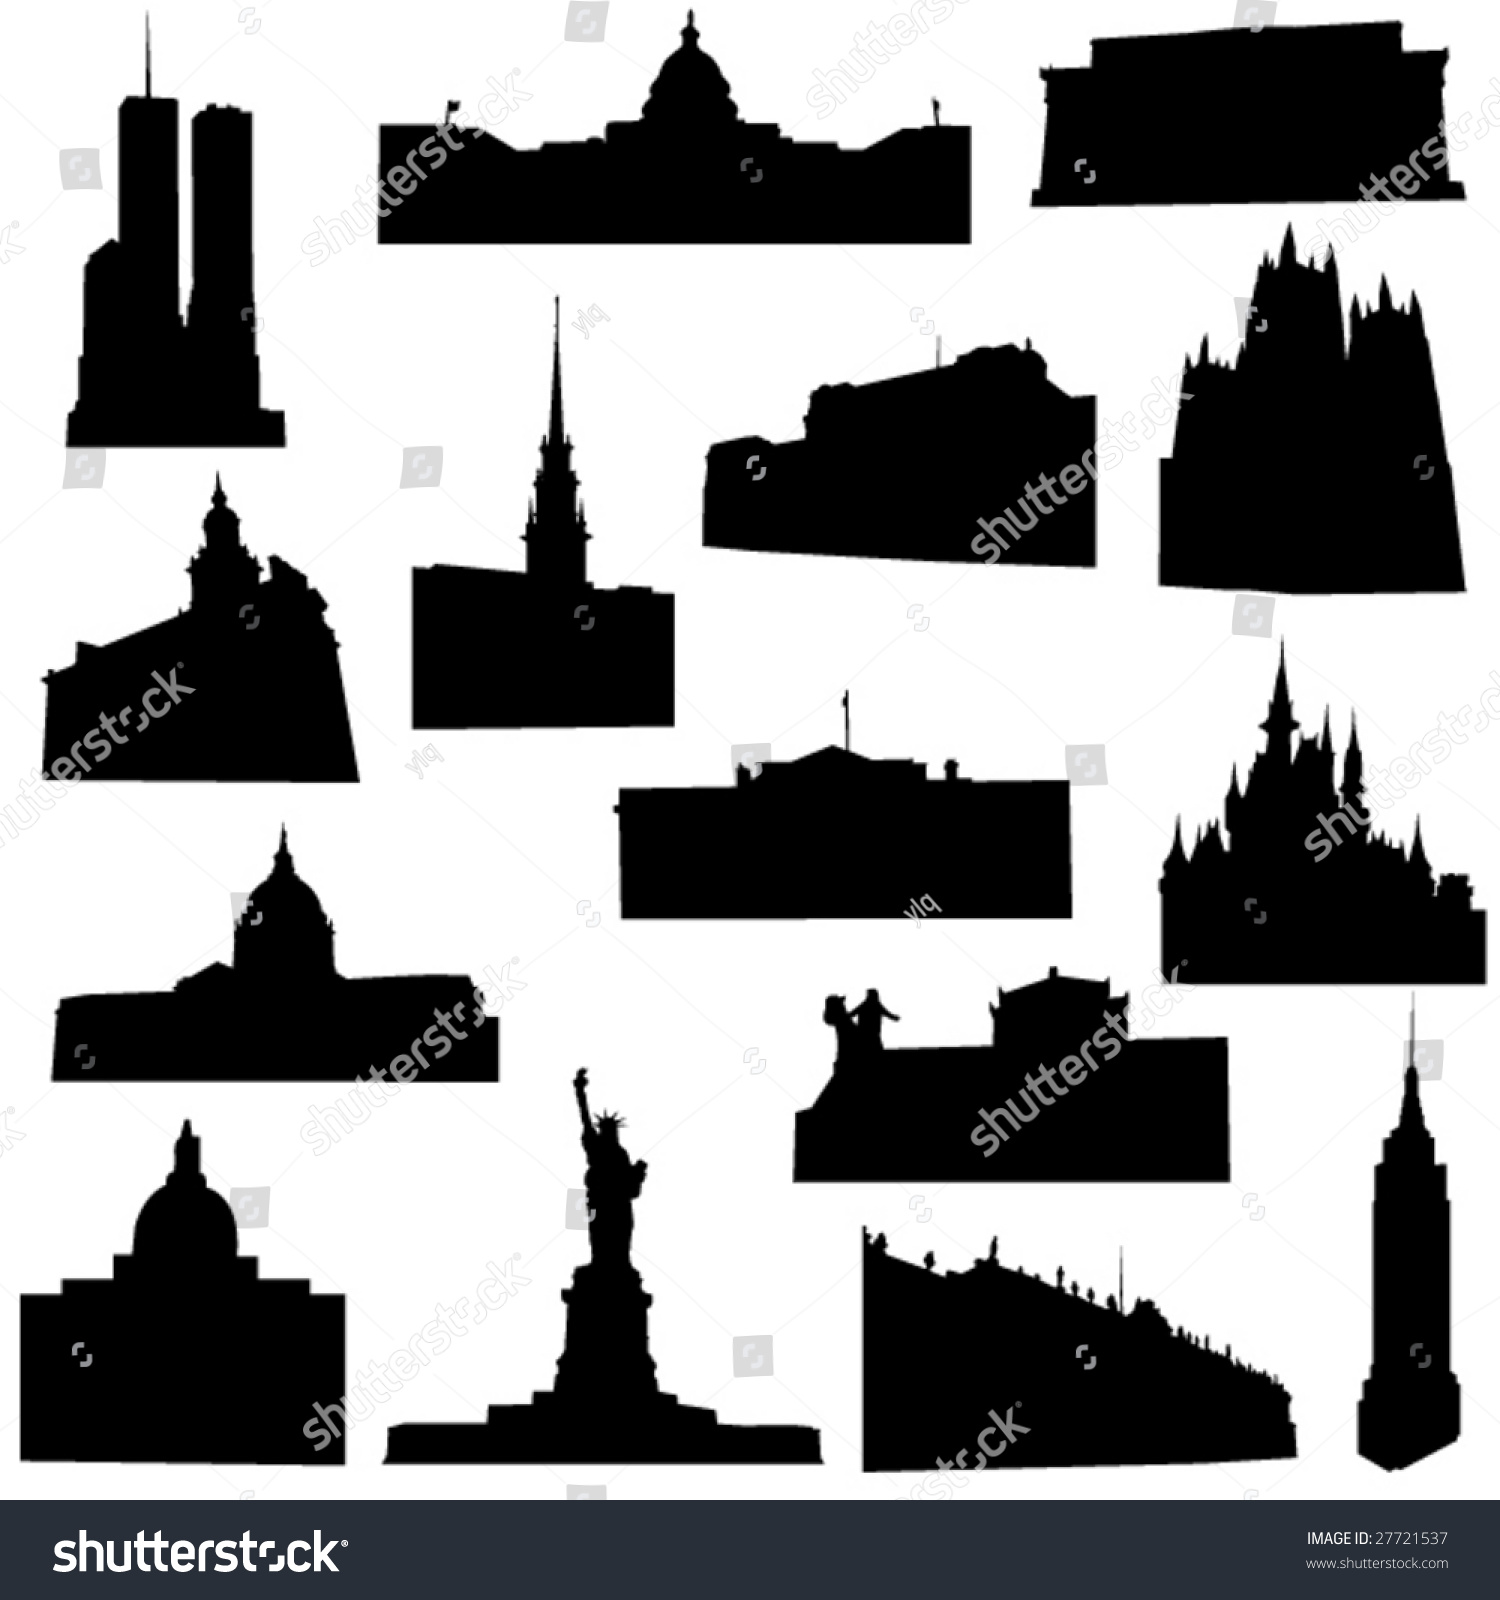 well known america architecture stock vector 27721537